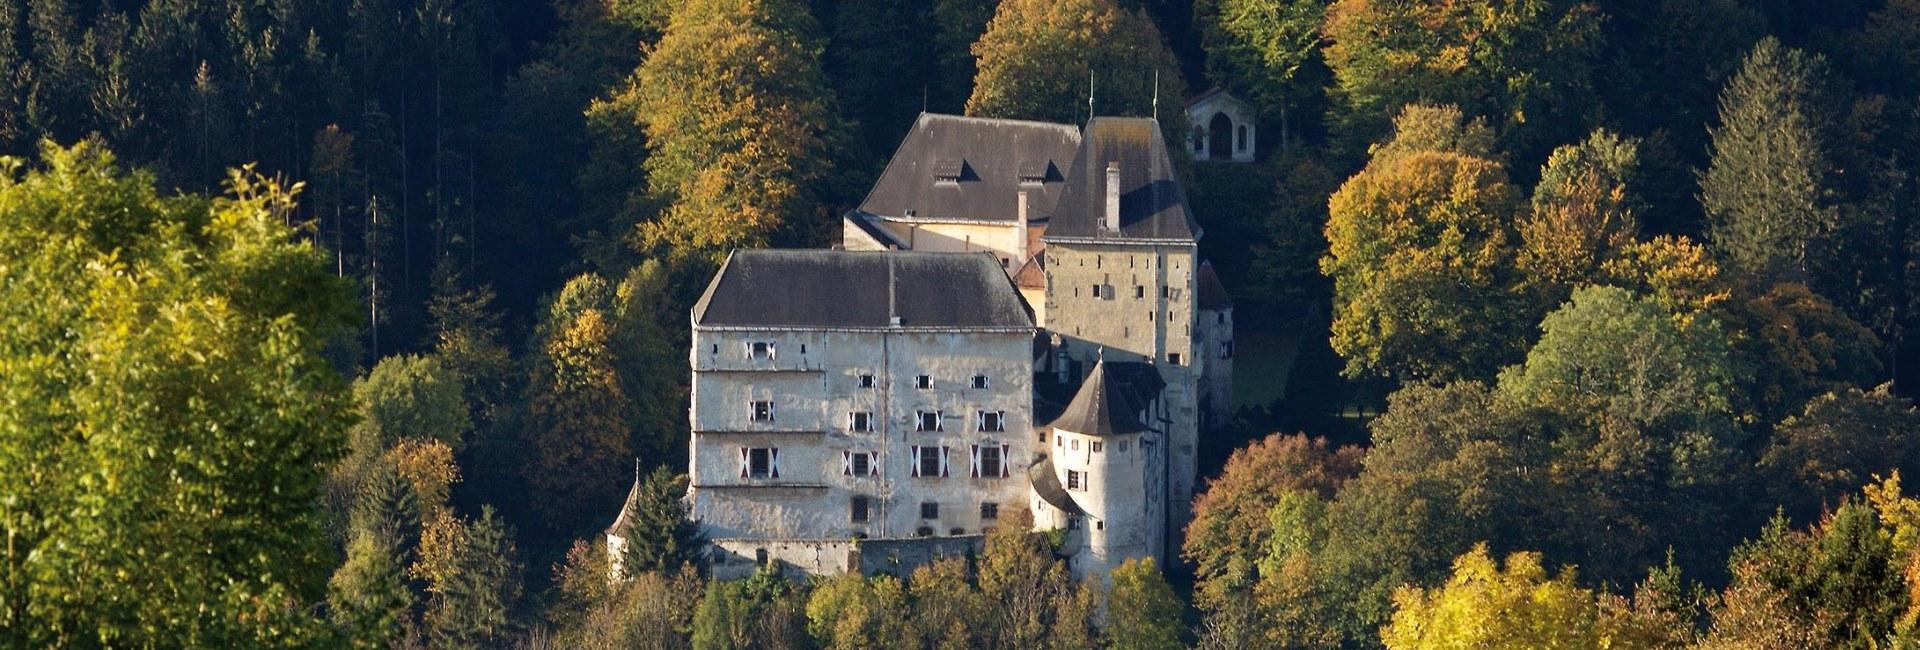 Feistritz Castle